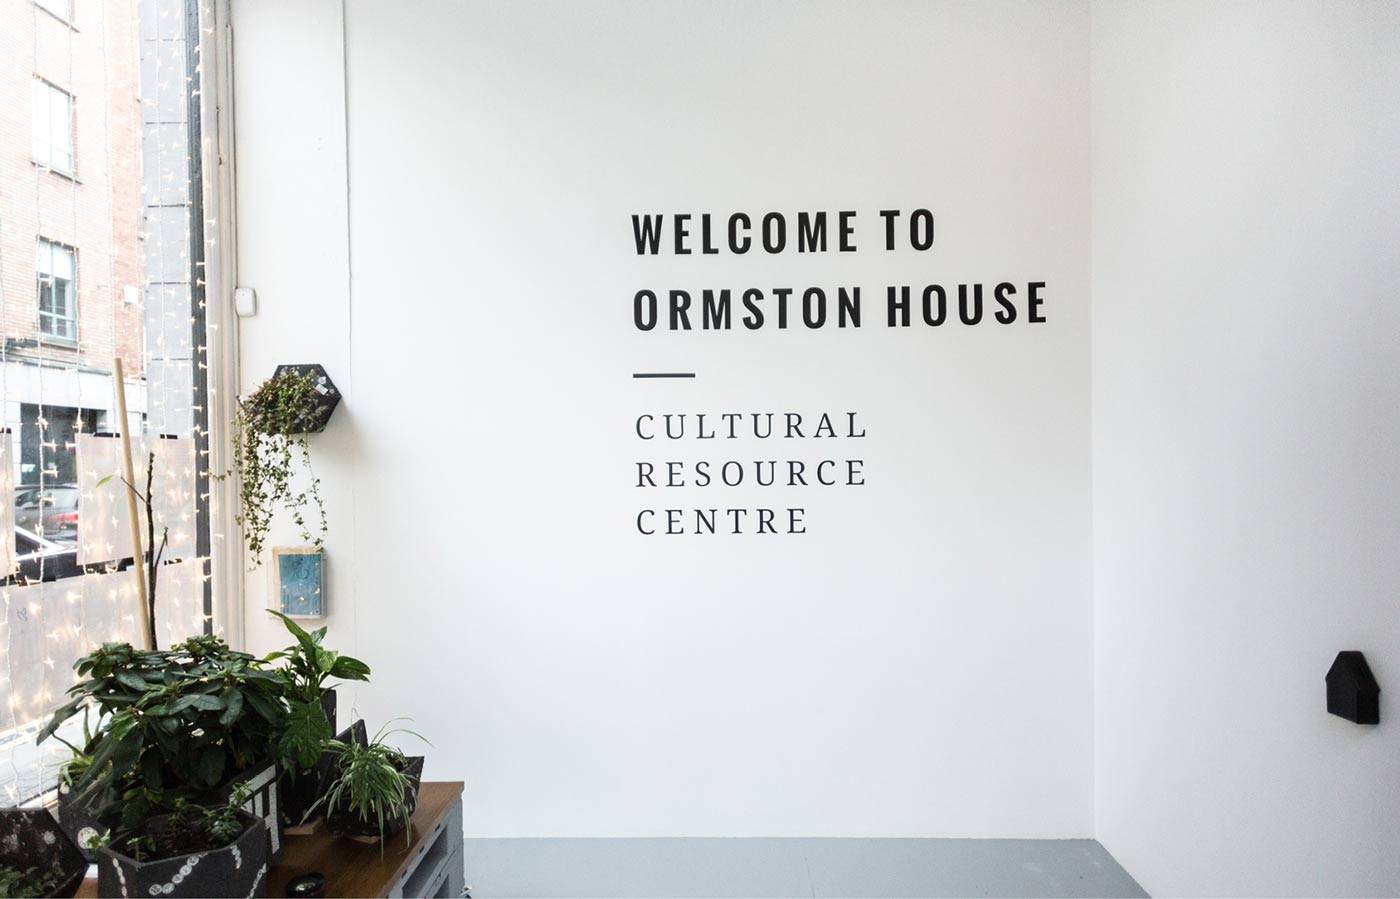 Ormston House Limerick brand development image of typography and welcome sign